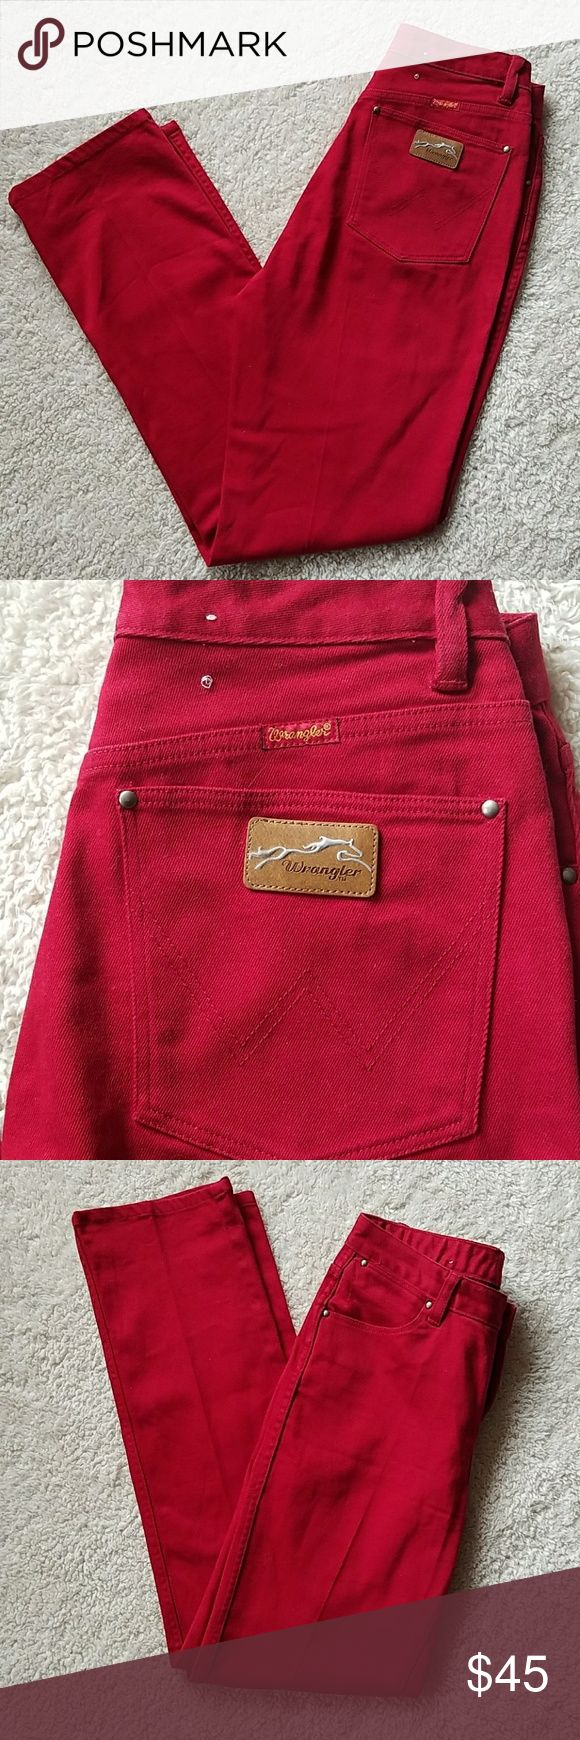 Wrangler~NWOT~WRANGLER JEANS Wrangler~WRANGLER JEANS~RED~NWOT SIZE TAGGED: 3/4X32 MEASURED: W27 3/4 RISE10 HIPS36 L32 Wrangler Jeans Straight Leg